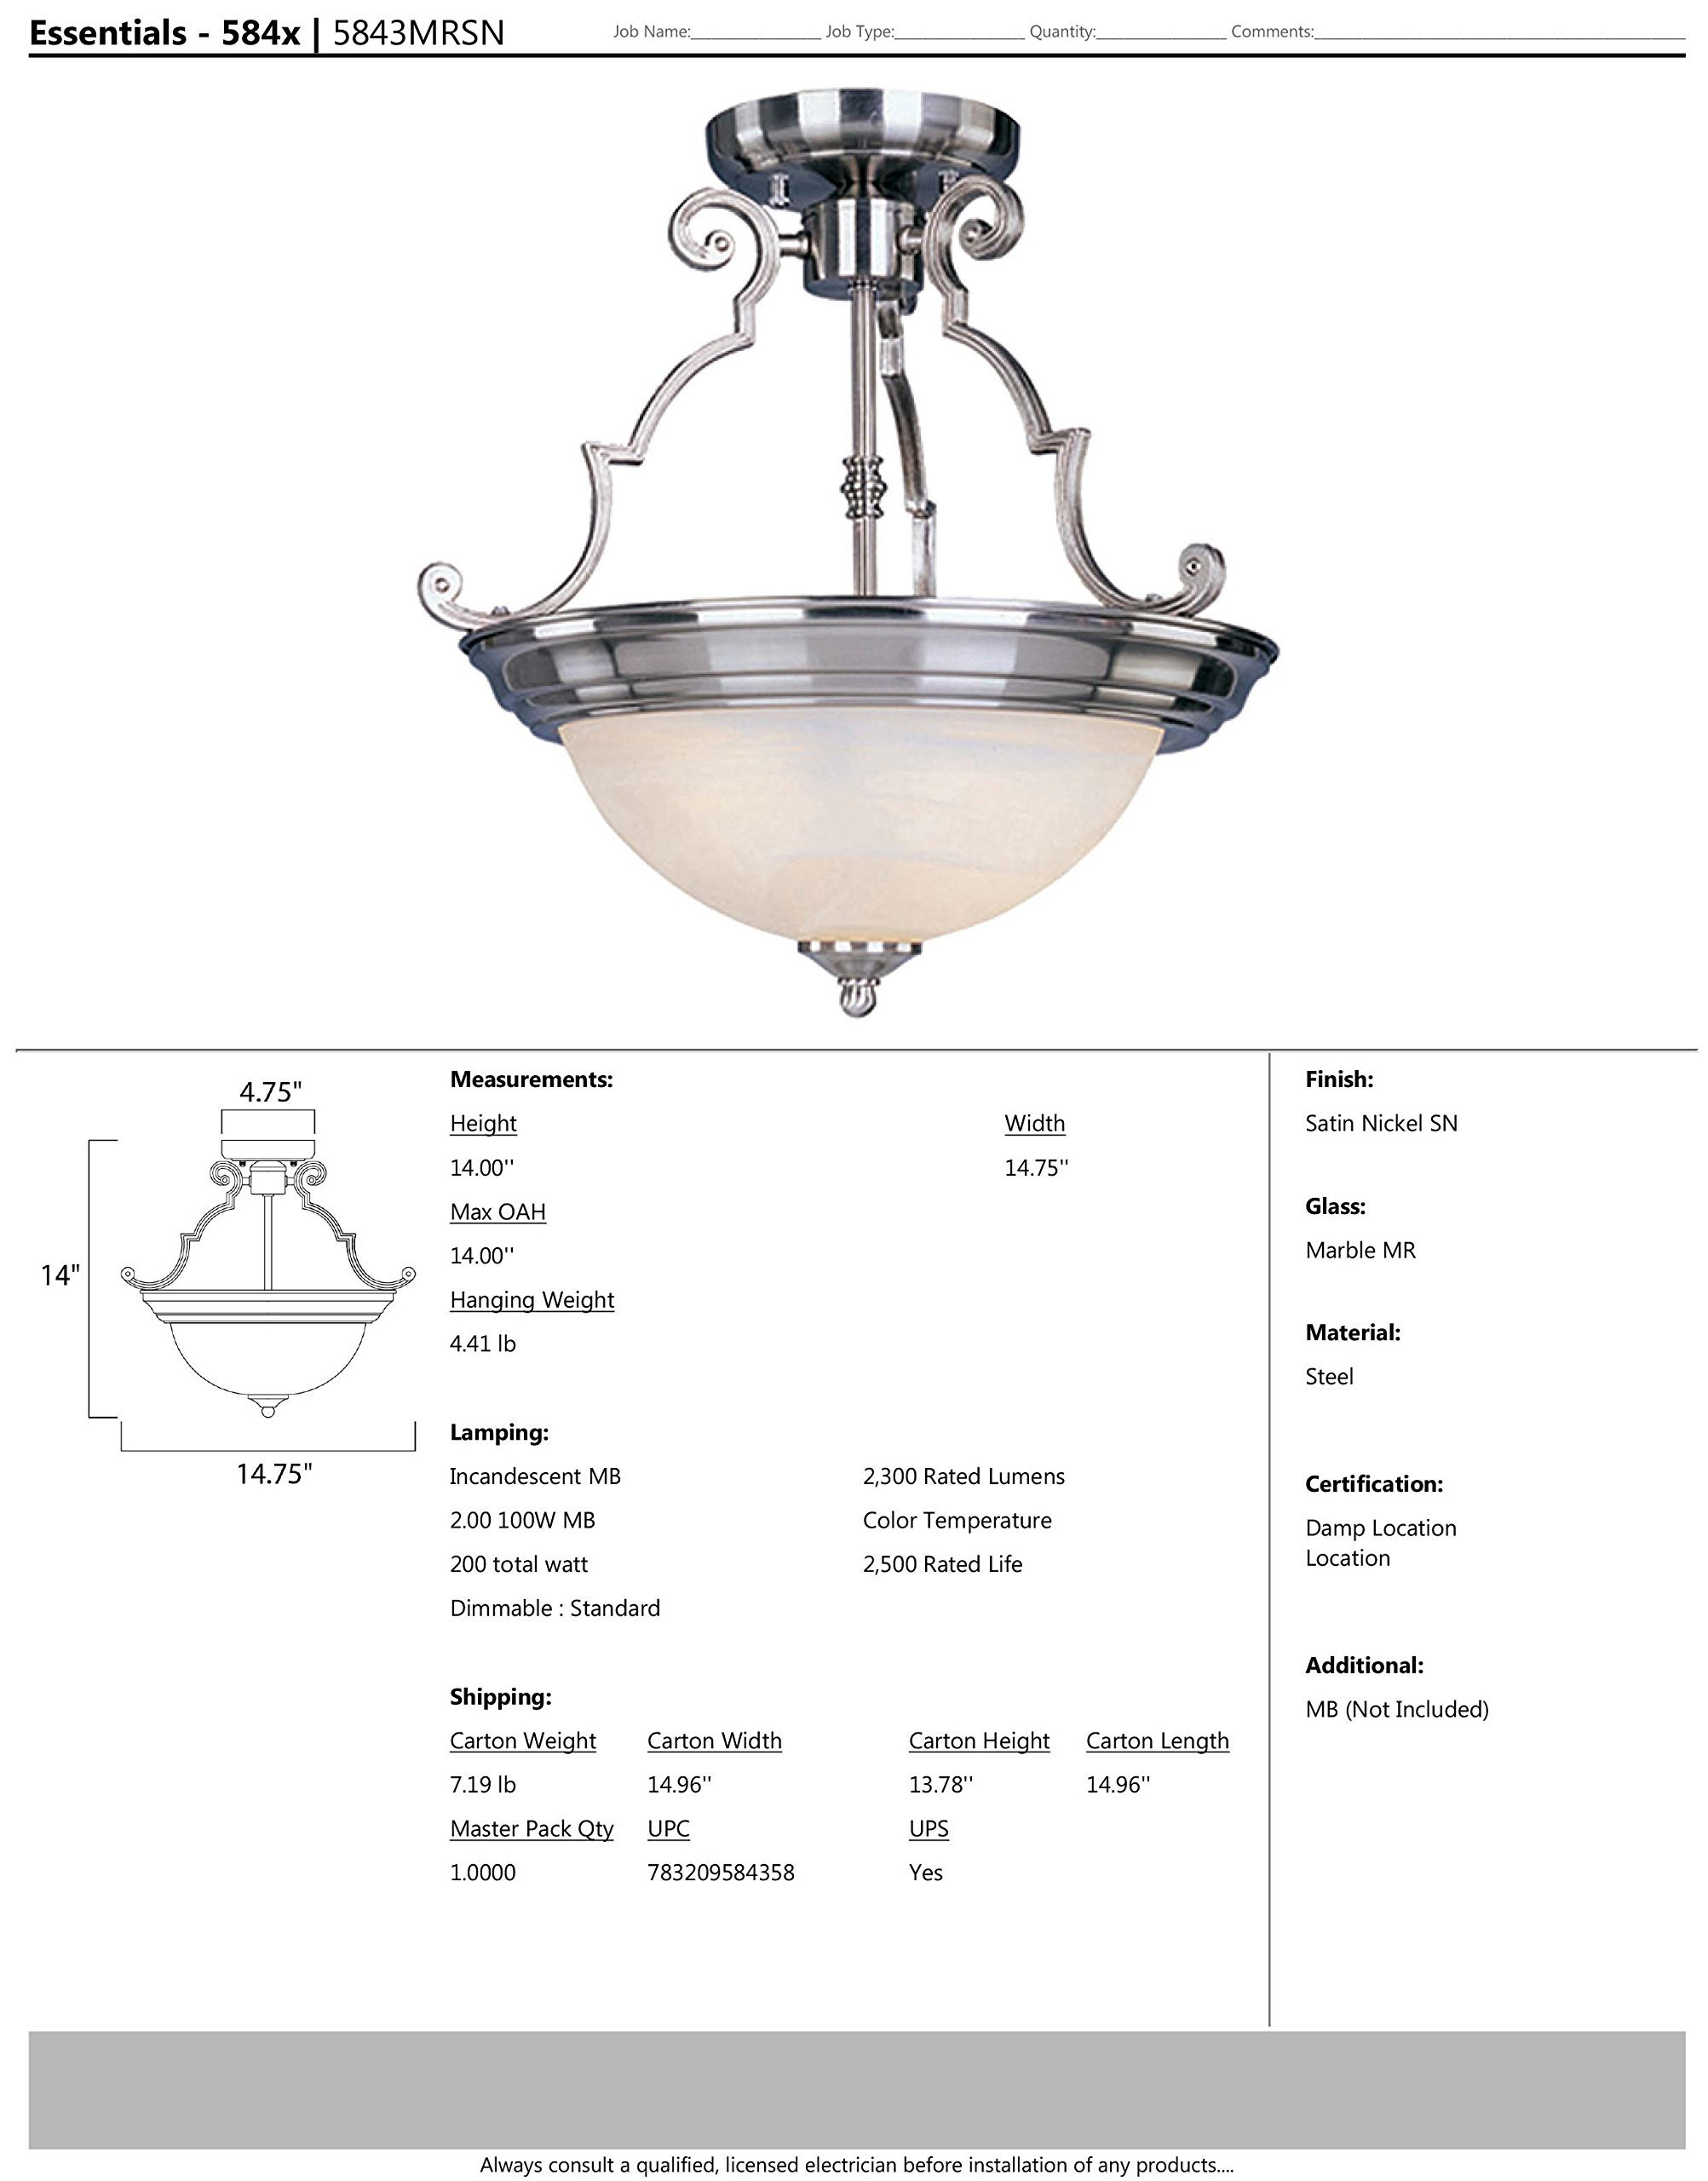 Maxim 5843MRSN Essentials 2-Light Semi-Flush Mount, Satin Nickel Finish, Marble Glass, MB Incandescent Incandescent Bulb , 50W Max., Dry Safety Rating, Standard Dimmable, Metal Shade Material, 550 Rated Lumens by Maxim Lighting (Image #2)